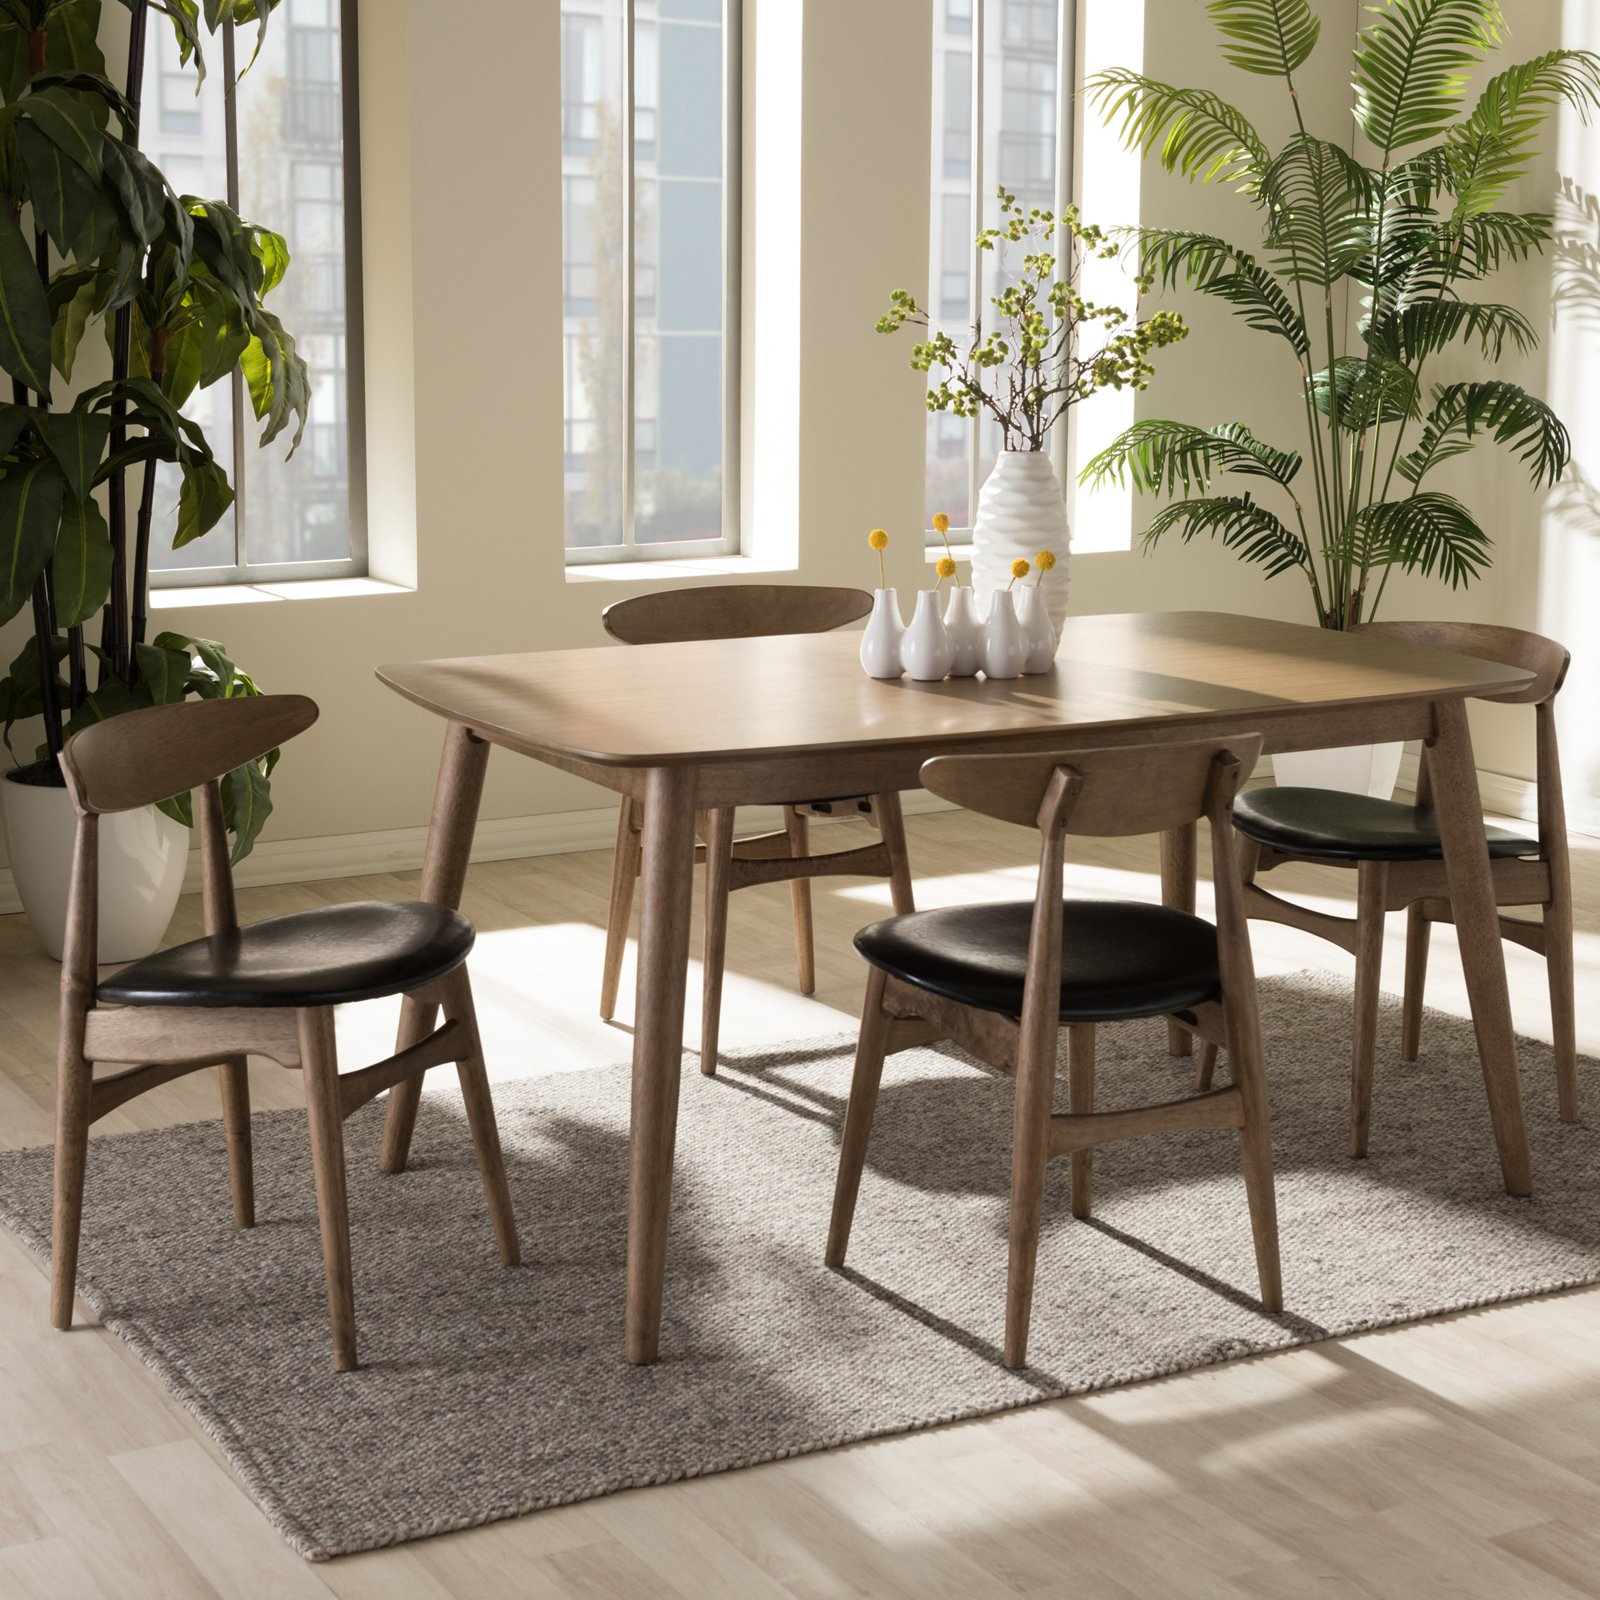 Baxton Studio Edna 5 Piece Dining Table Set : studio dining table set - pezcame.com